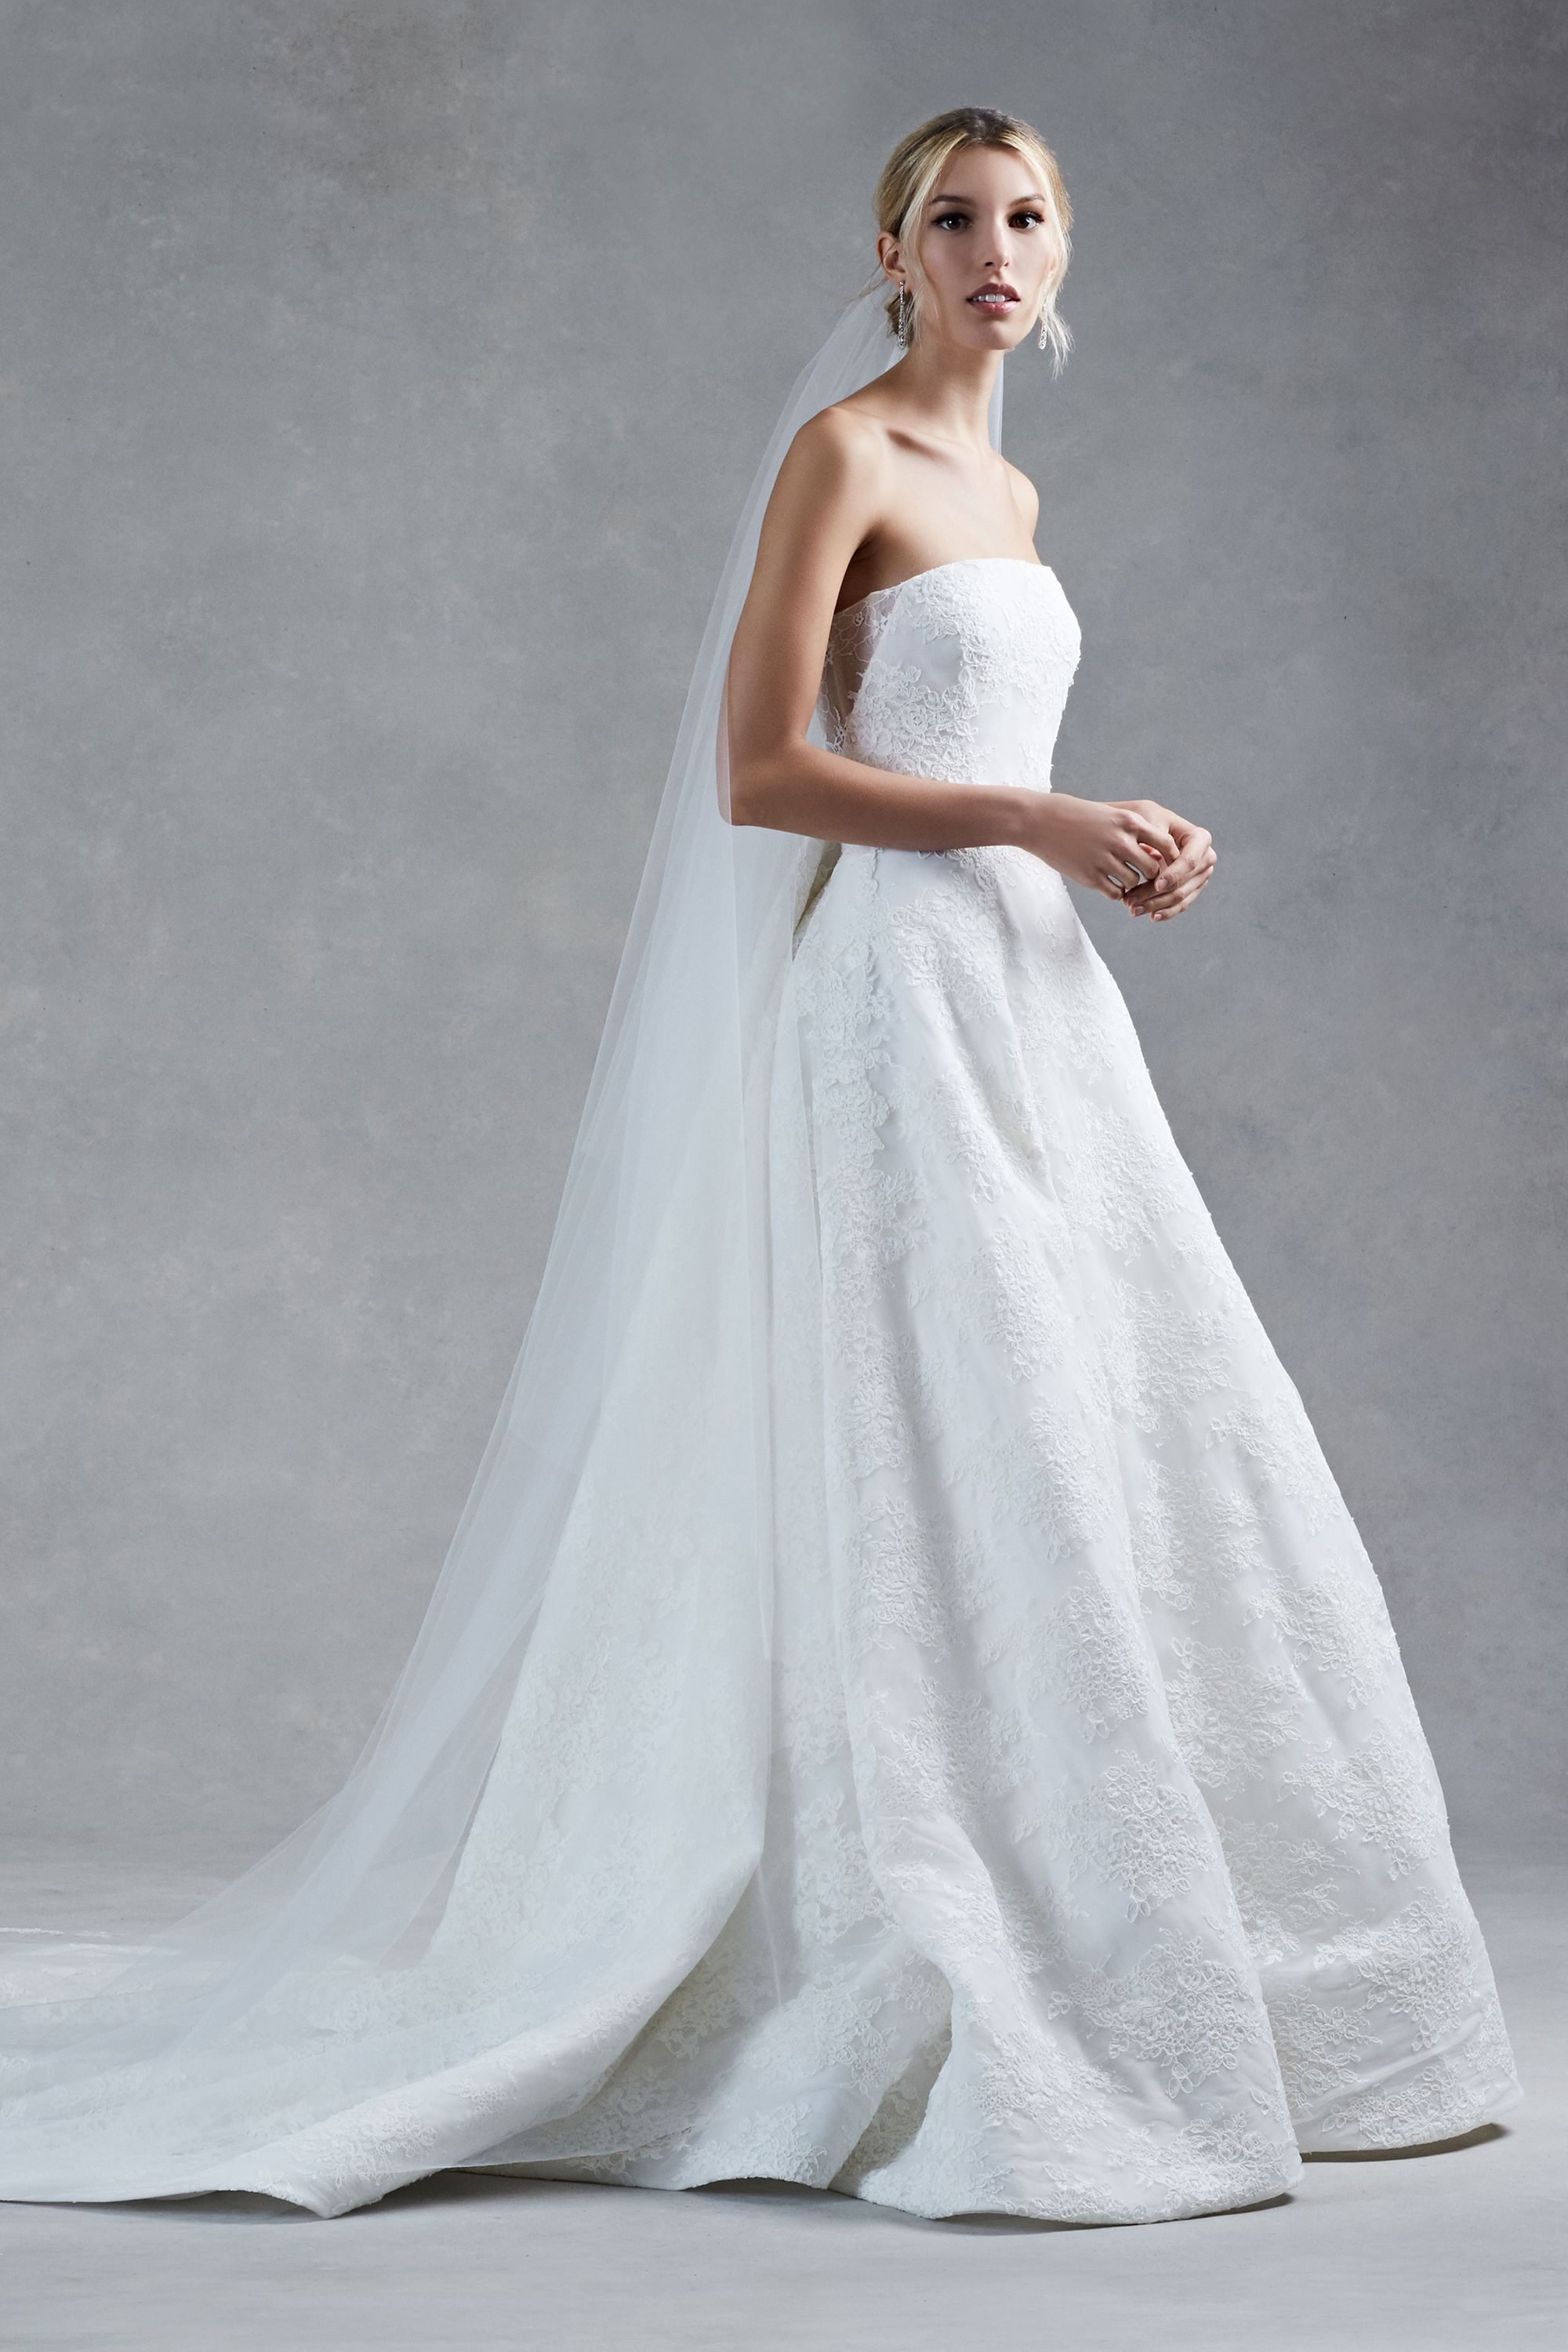 Introducing: Oscar de la Renta Fall 2017 Bridal | Oscar de la Renta ...